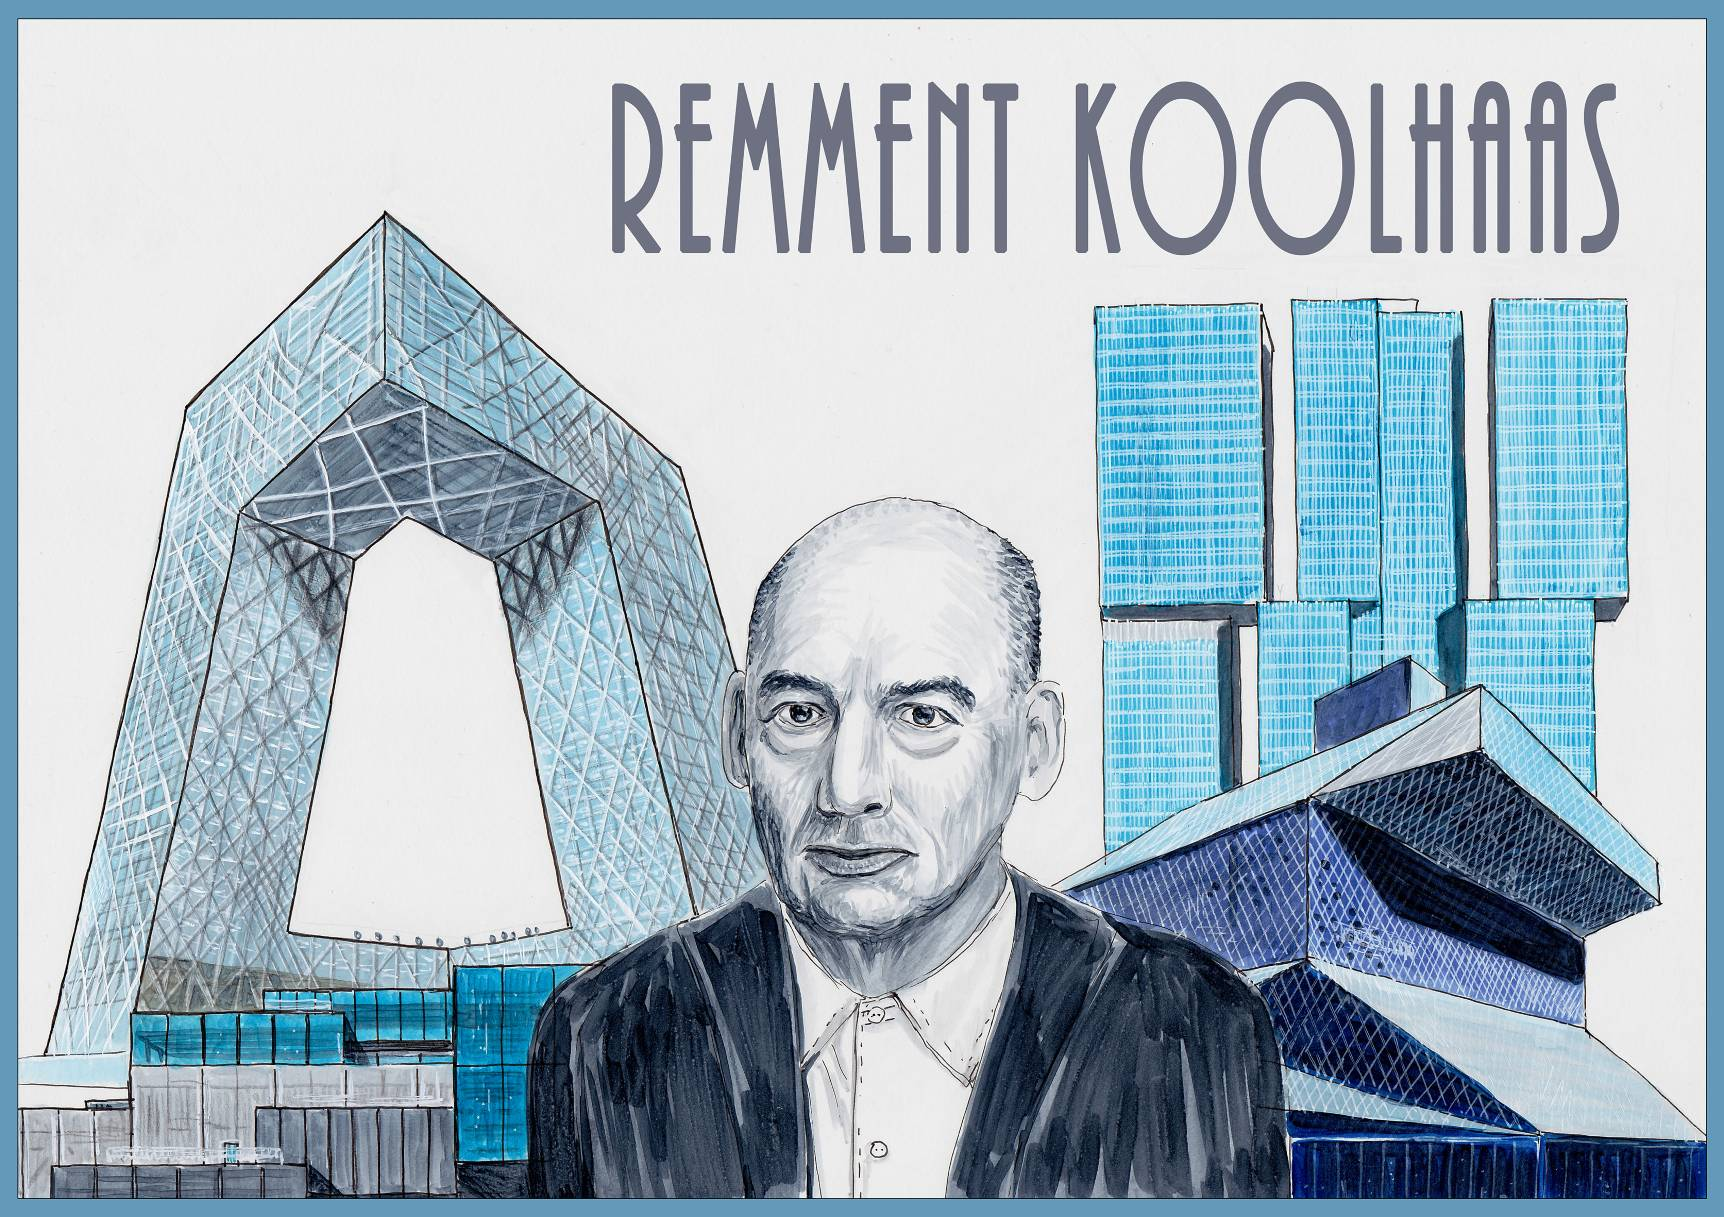 REMMET_KOOLHAAS